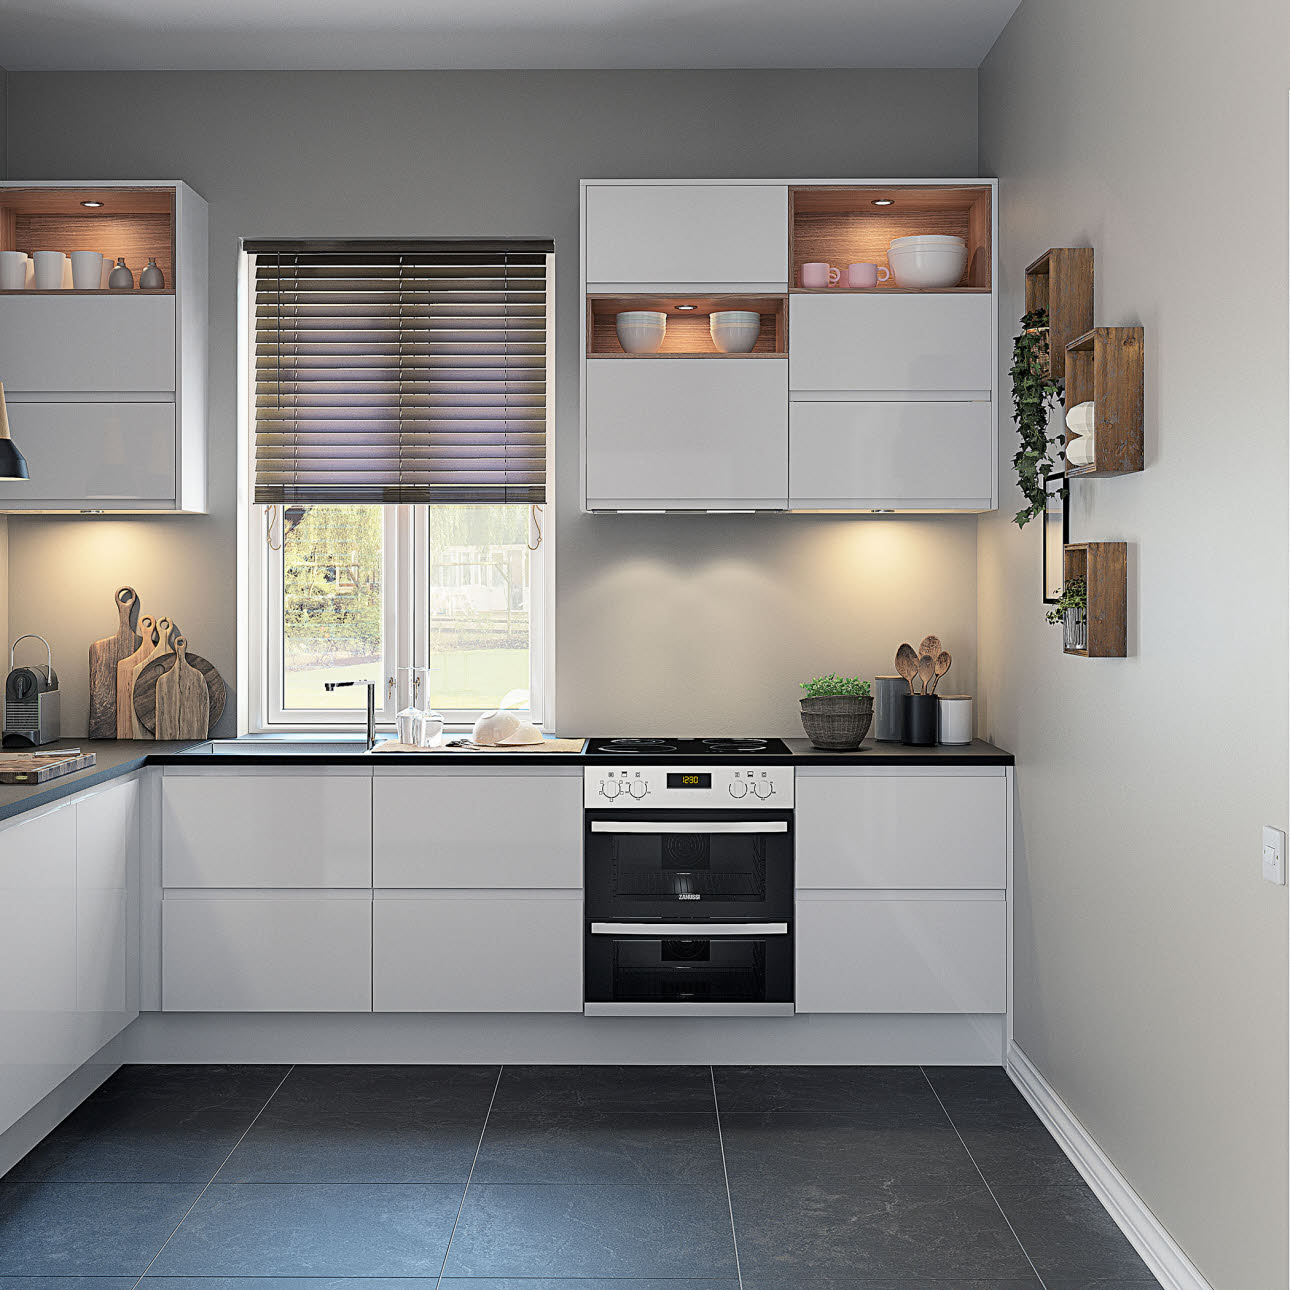 Fitted white one box white kitchen with black tiled floor